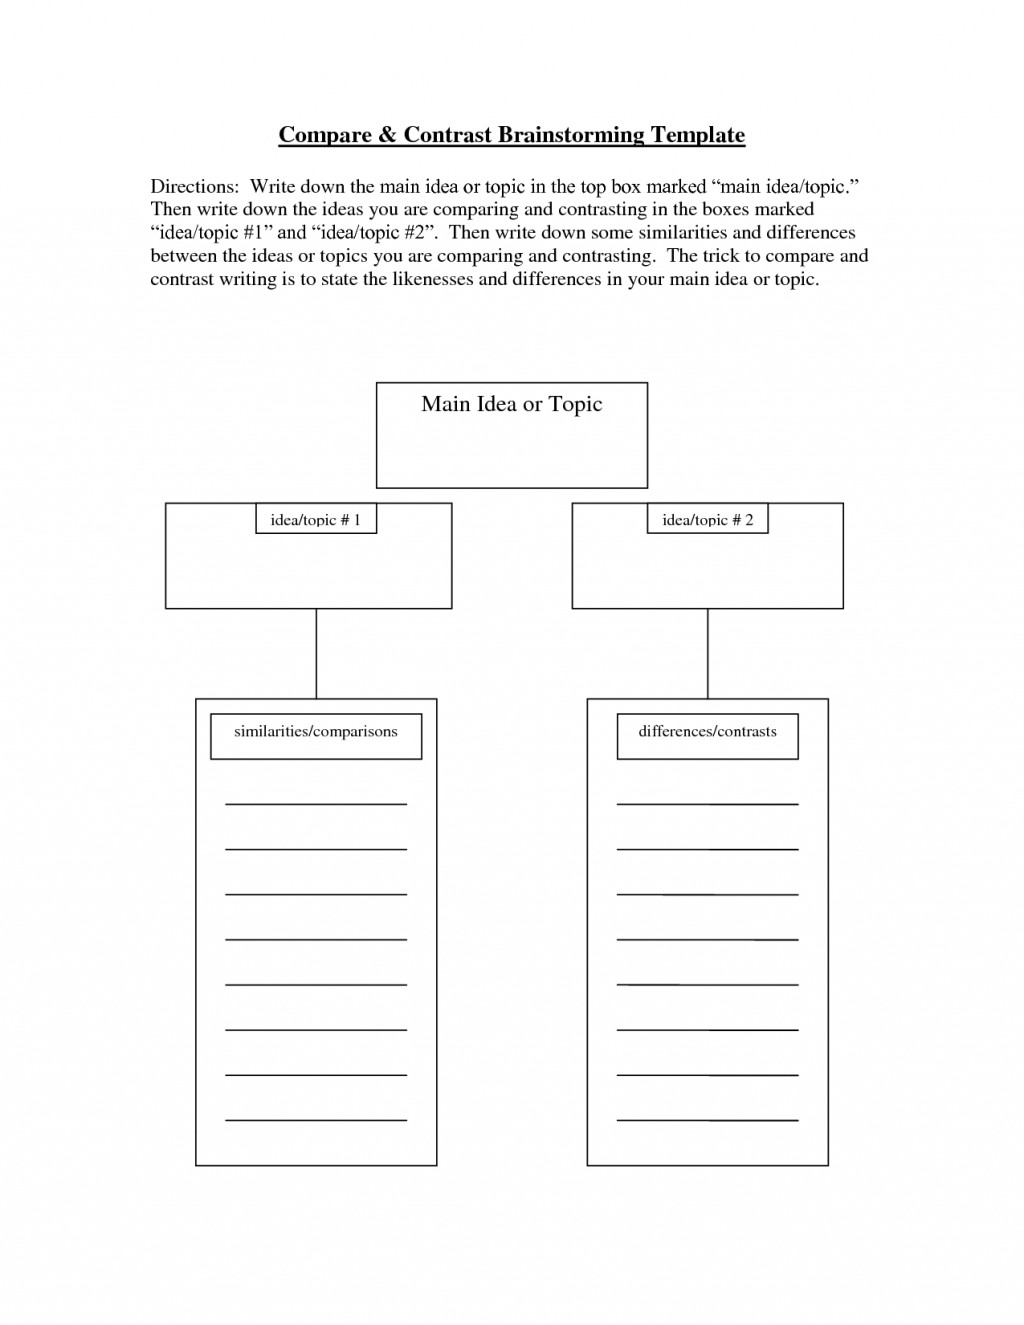 008 Brainstorming Essay Example Compare And Contrast Exceptional Template For Middle School 8th Grade Examples Large